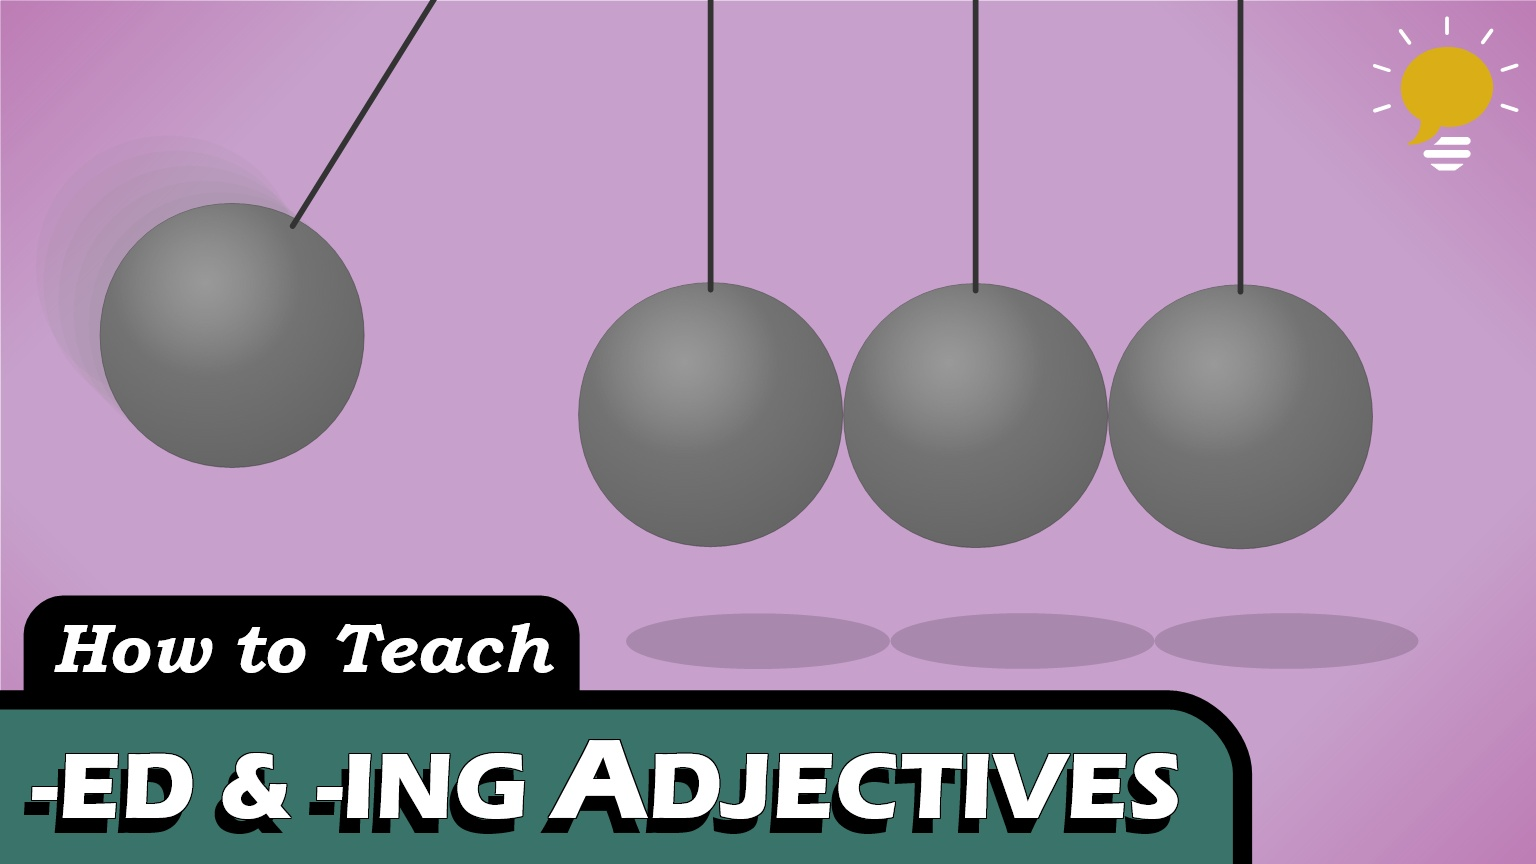 Passive & Active Adjectives - Also known as -ING and -ED/-EN adjectives. We use the former to express that a noun causes an action and the latter to express that a noun is affected by an action.